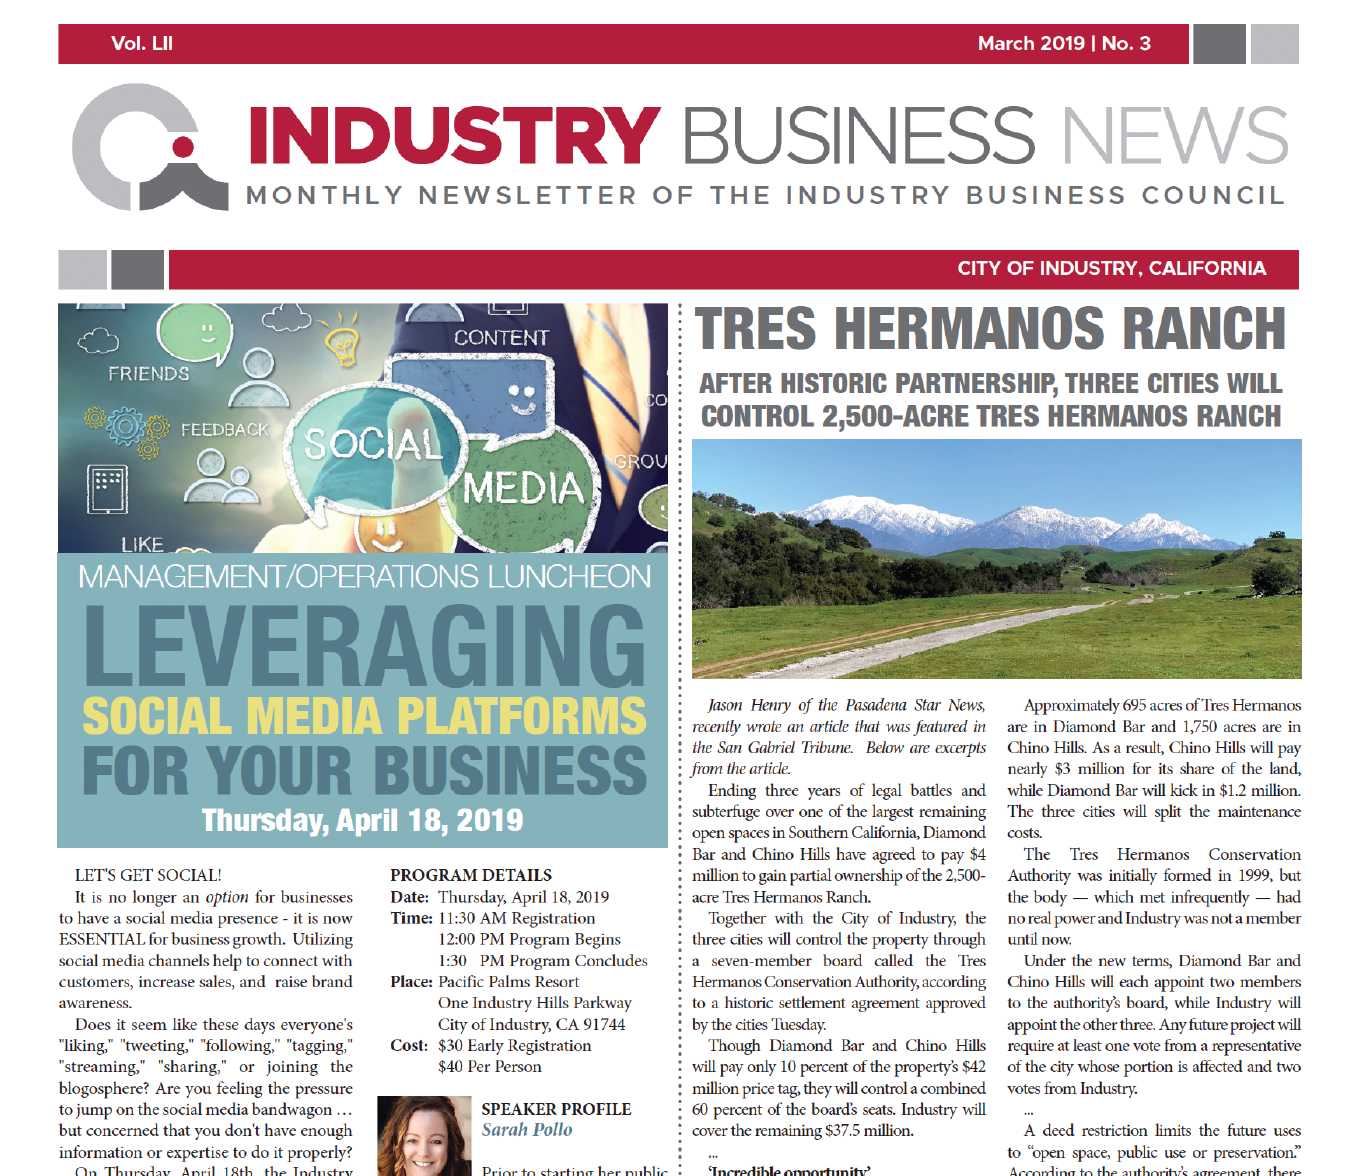 NEWSLETTER | 2019 MARCH Industry Business News